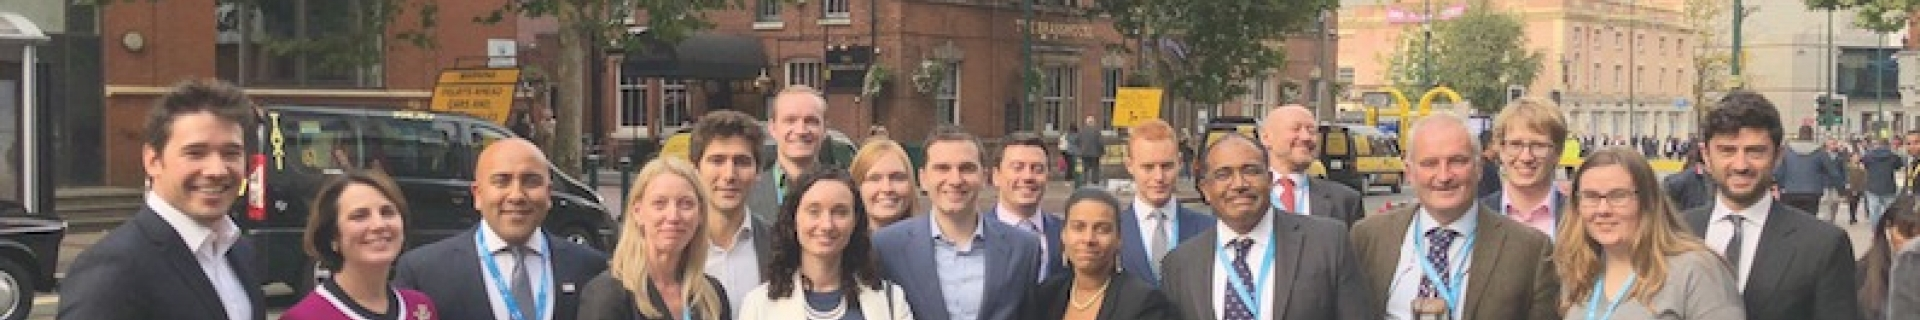 Banner image for Hampstead and Kilburn Conservatives